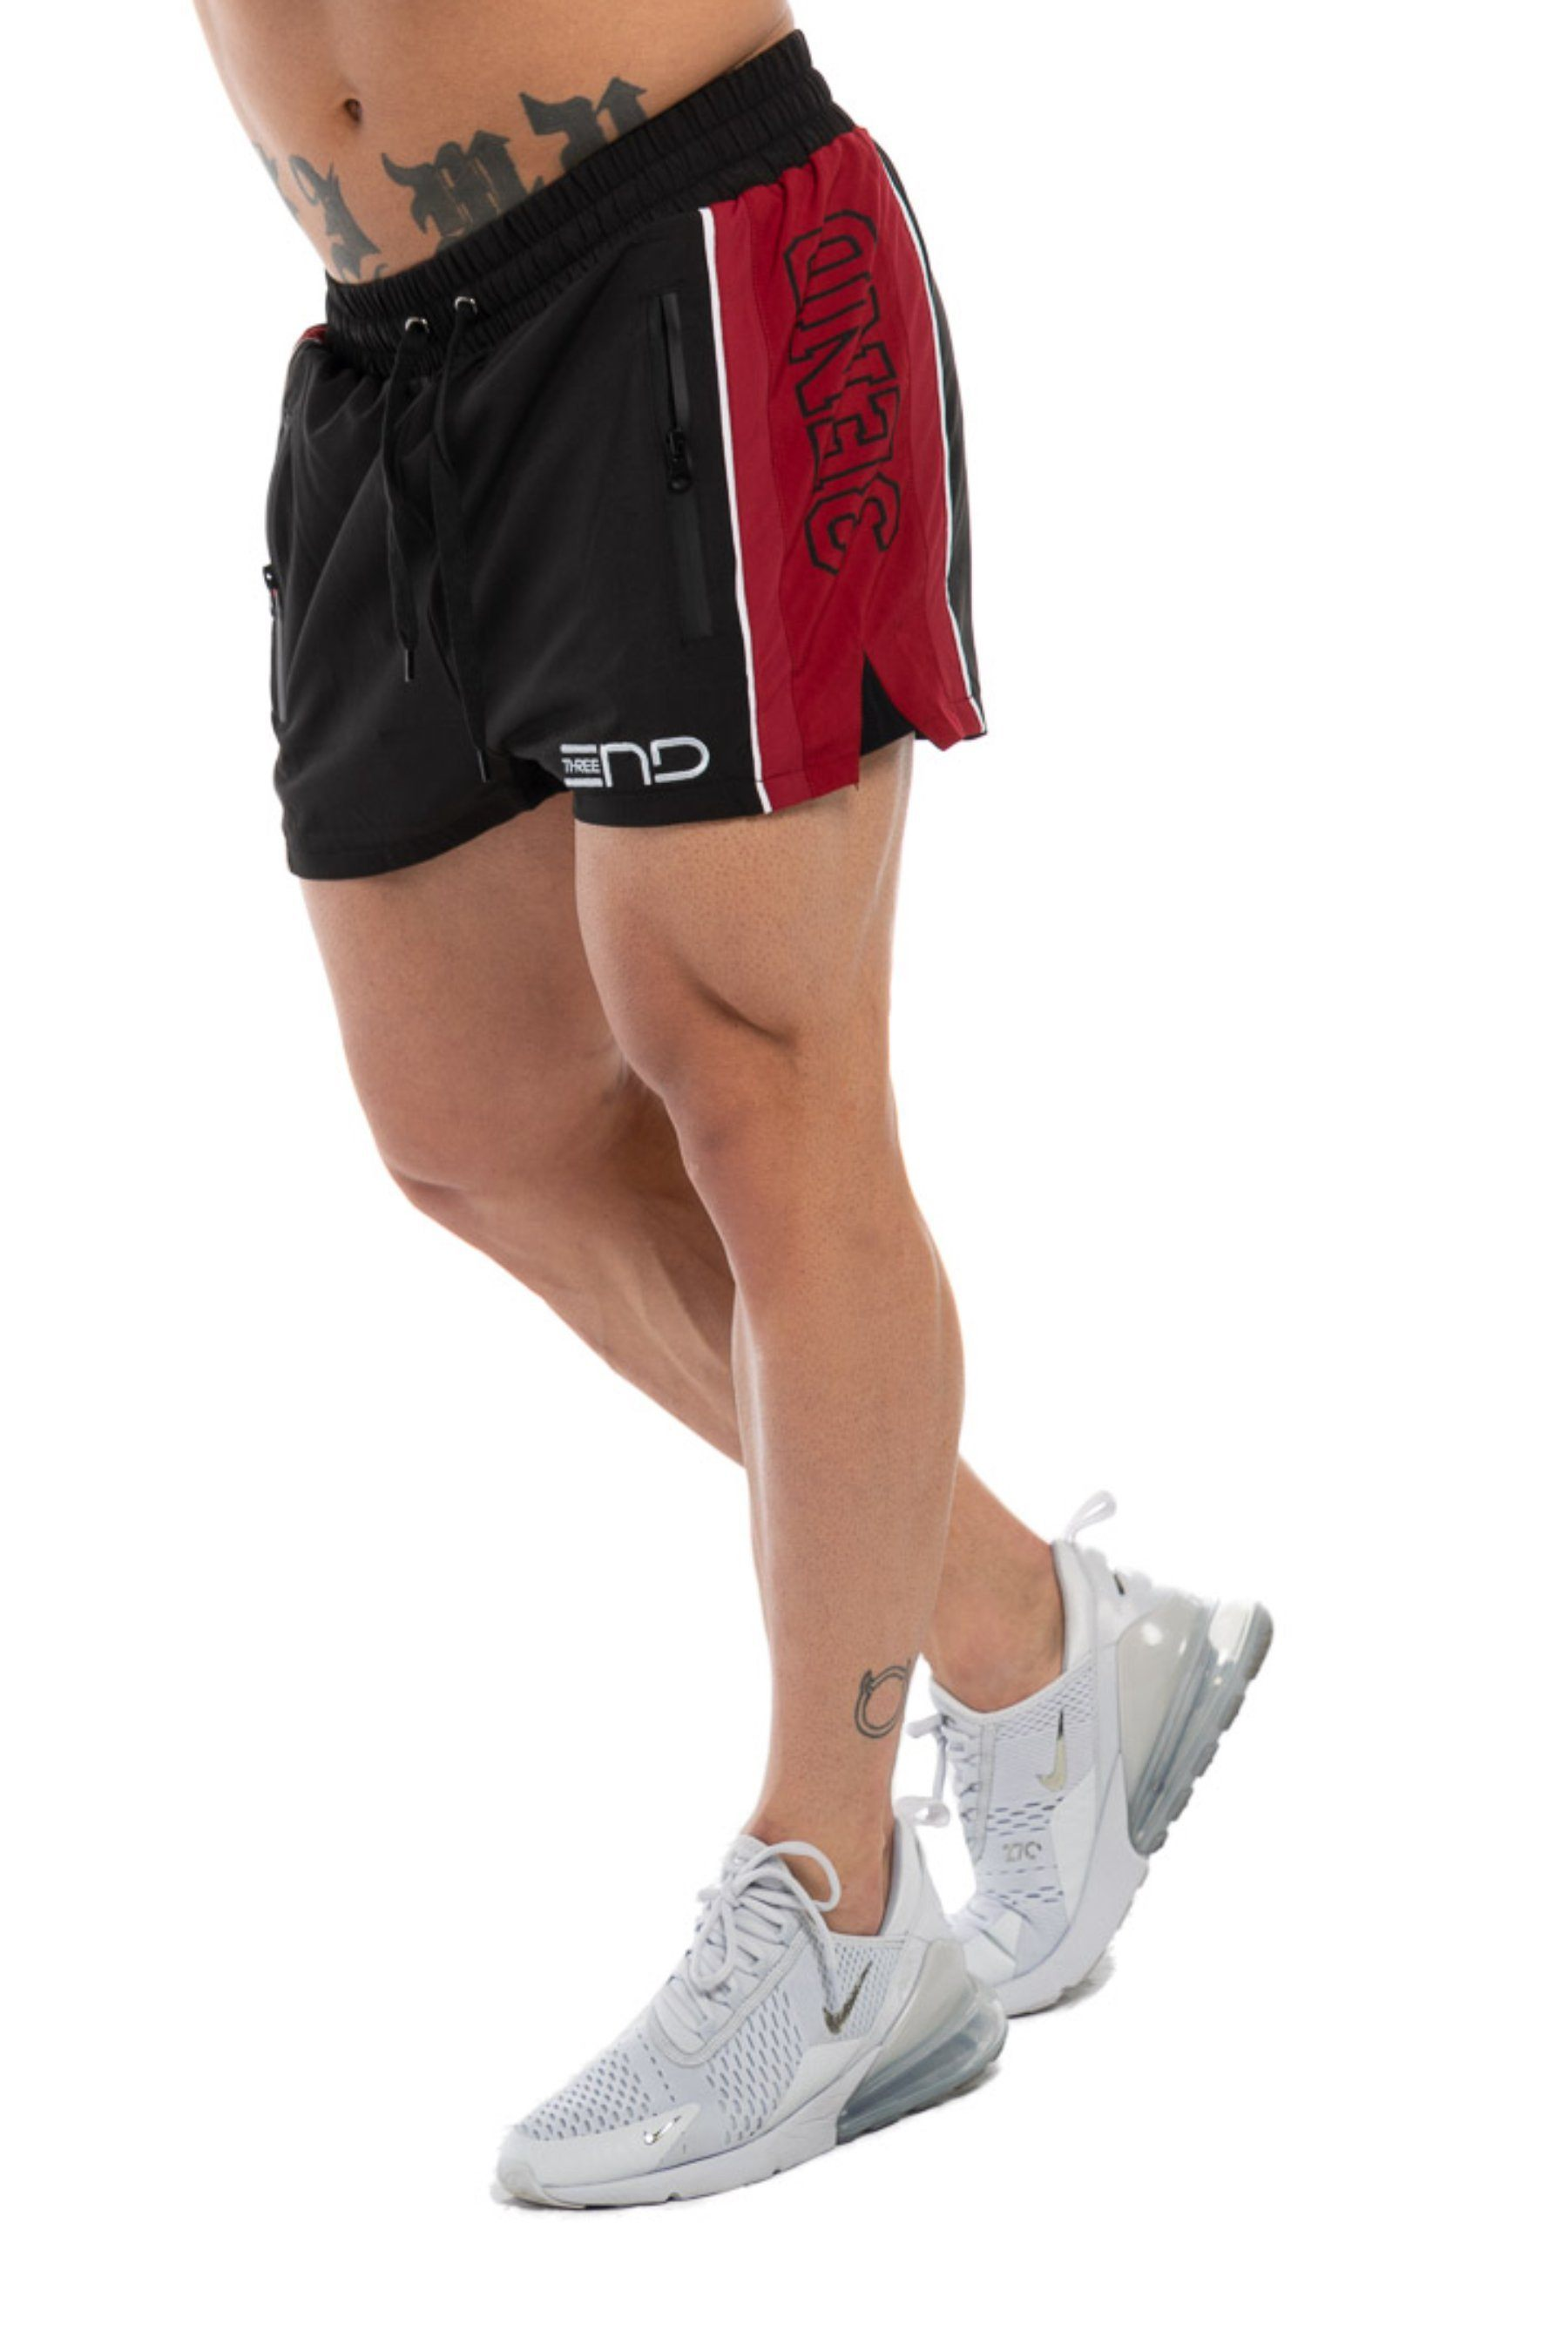 Three End Lifting Shorts - Black/Maroon